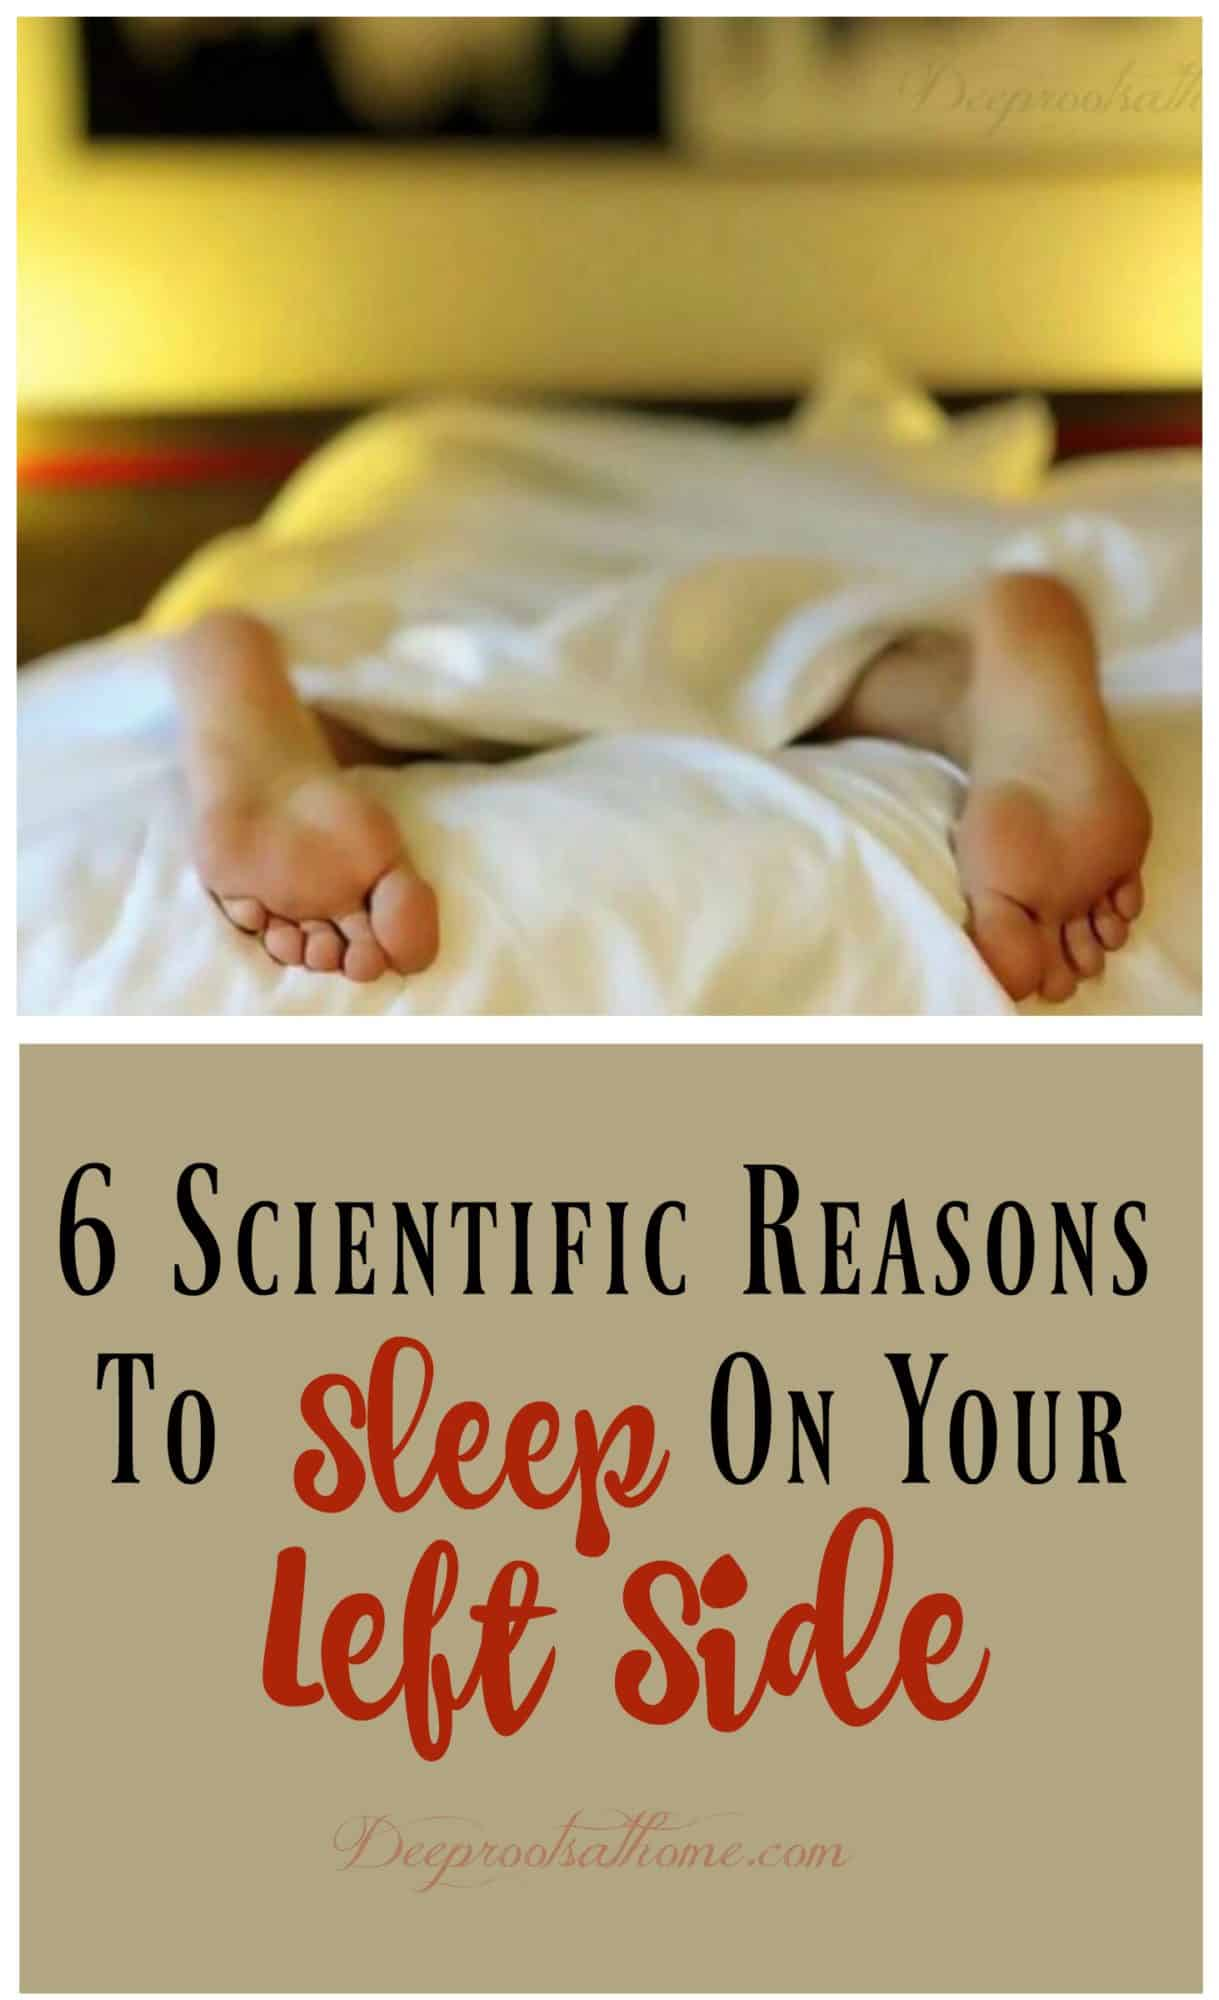 6 Scientific Reasons To Sleep On Your Left Side, mental, physical well being, sleep position, optimal health, study, research, The Journal of Clinical Gastroenterology, Dr. John Doulliard, digestion, heartburn, sleeping in pregnancy, health benefits, lymphatic drainage, lymphatic system, muscle pumping, filter toxins, lymph nodes, lymphatic duct, stomach, pancreas, spleen, vena cava, acid reflux,